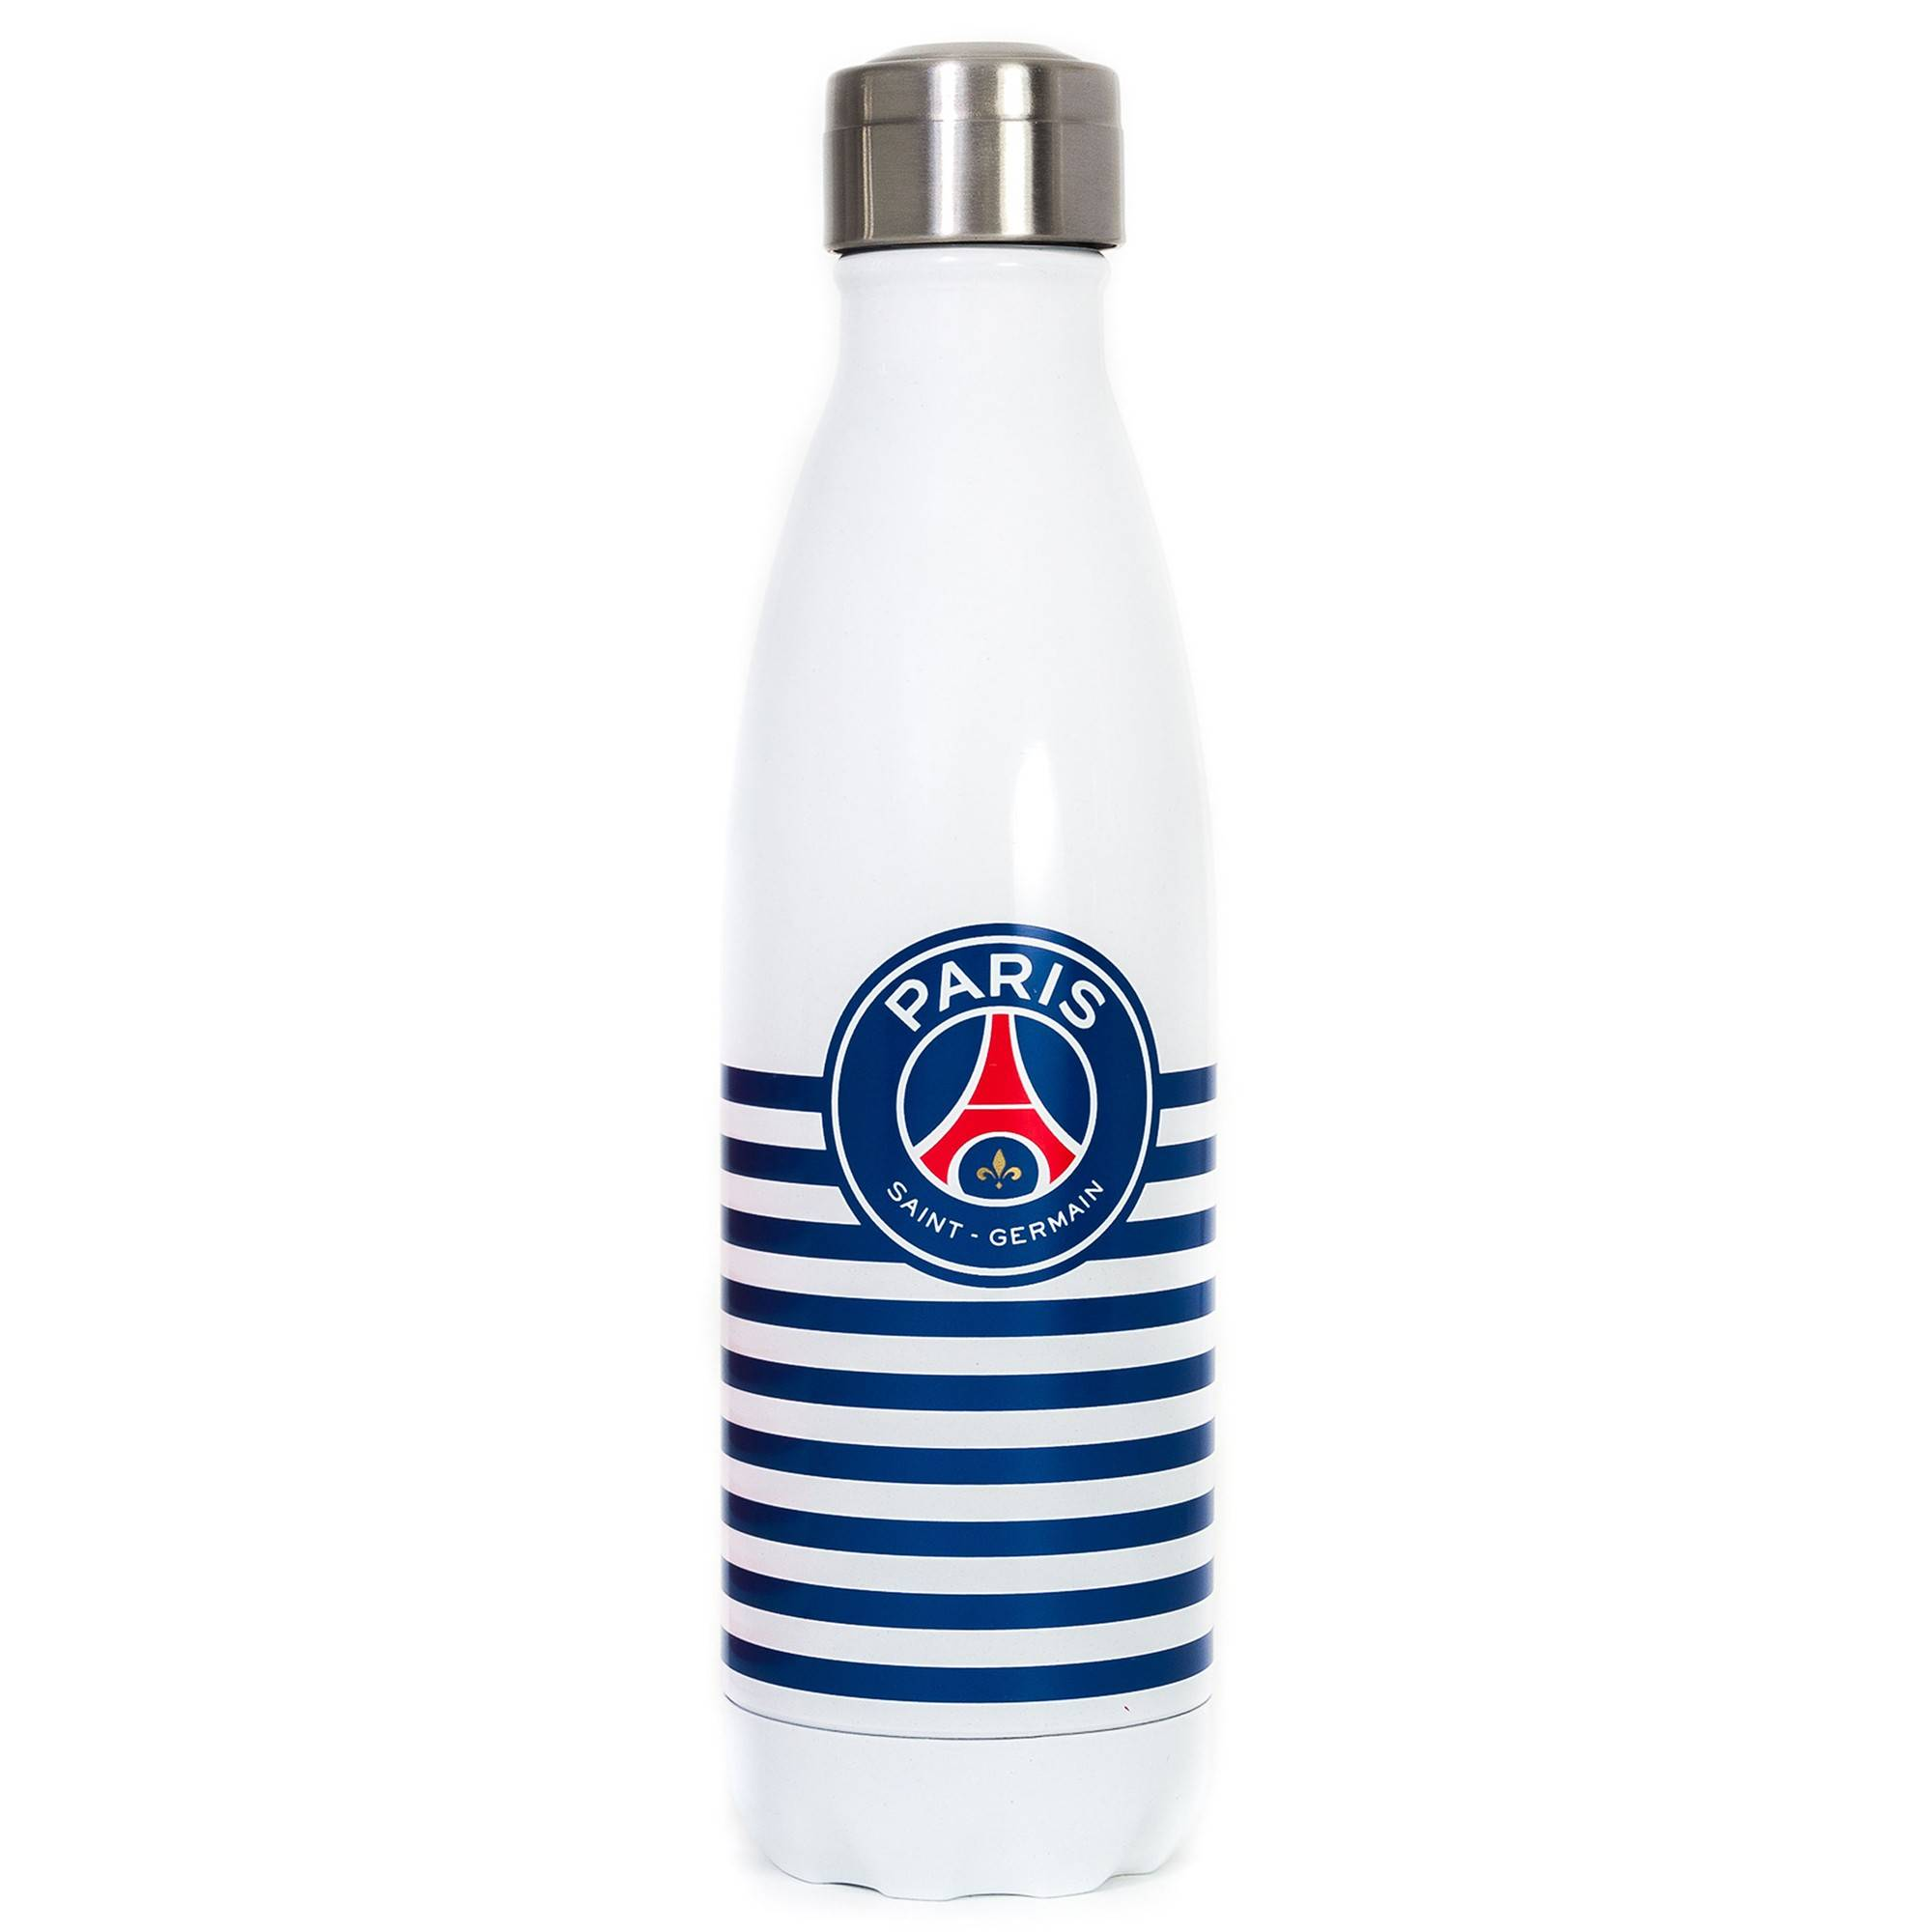 Bouteille isotherme PSG Marinière 500 ml - Blancheporte